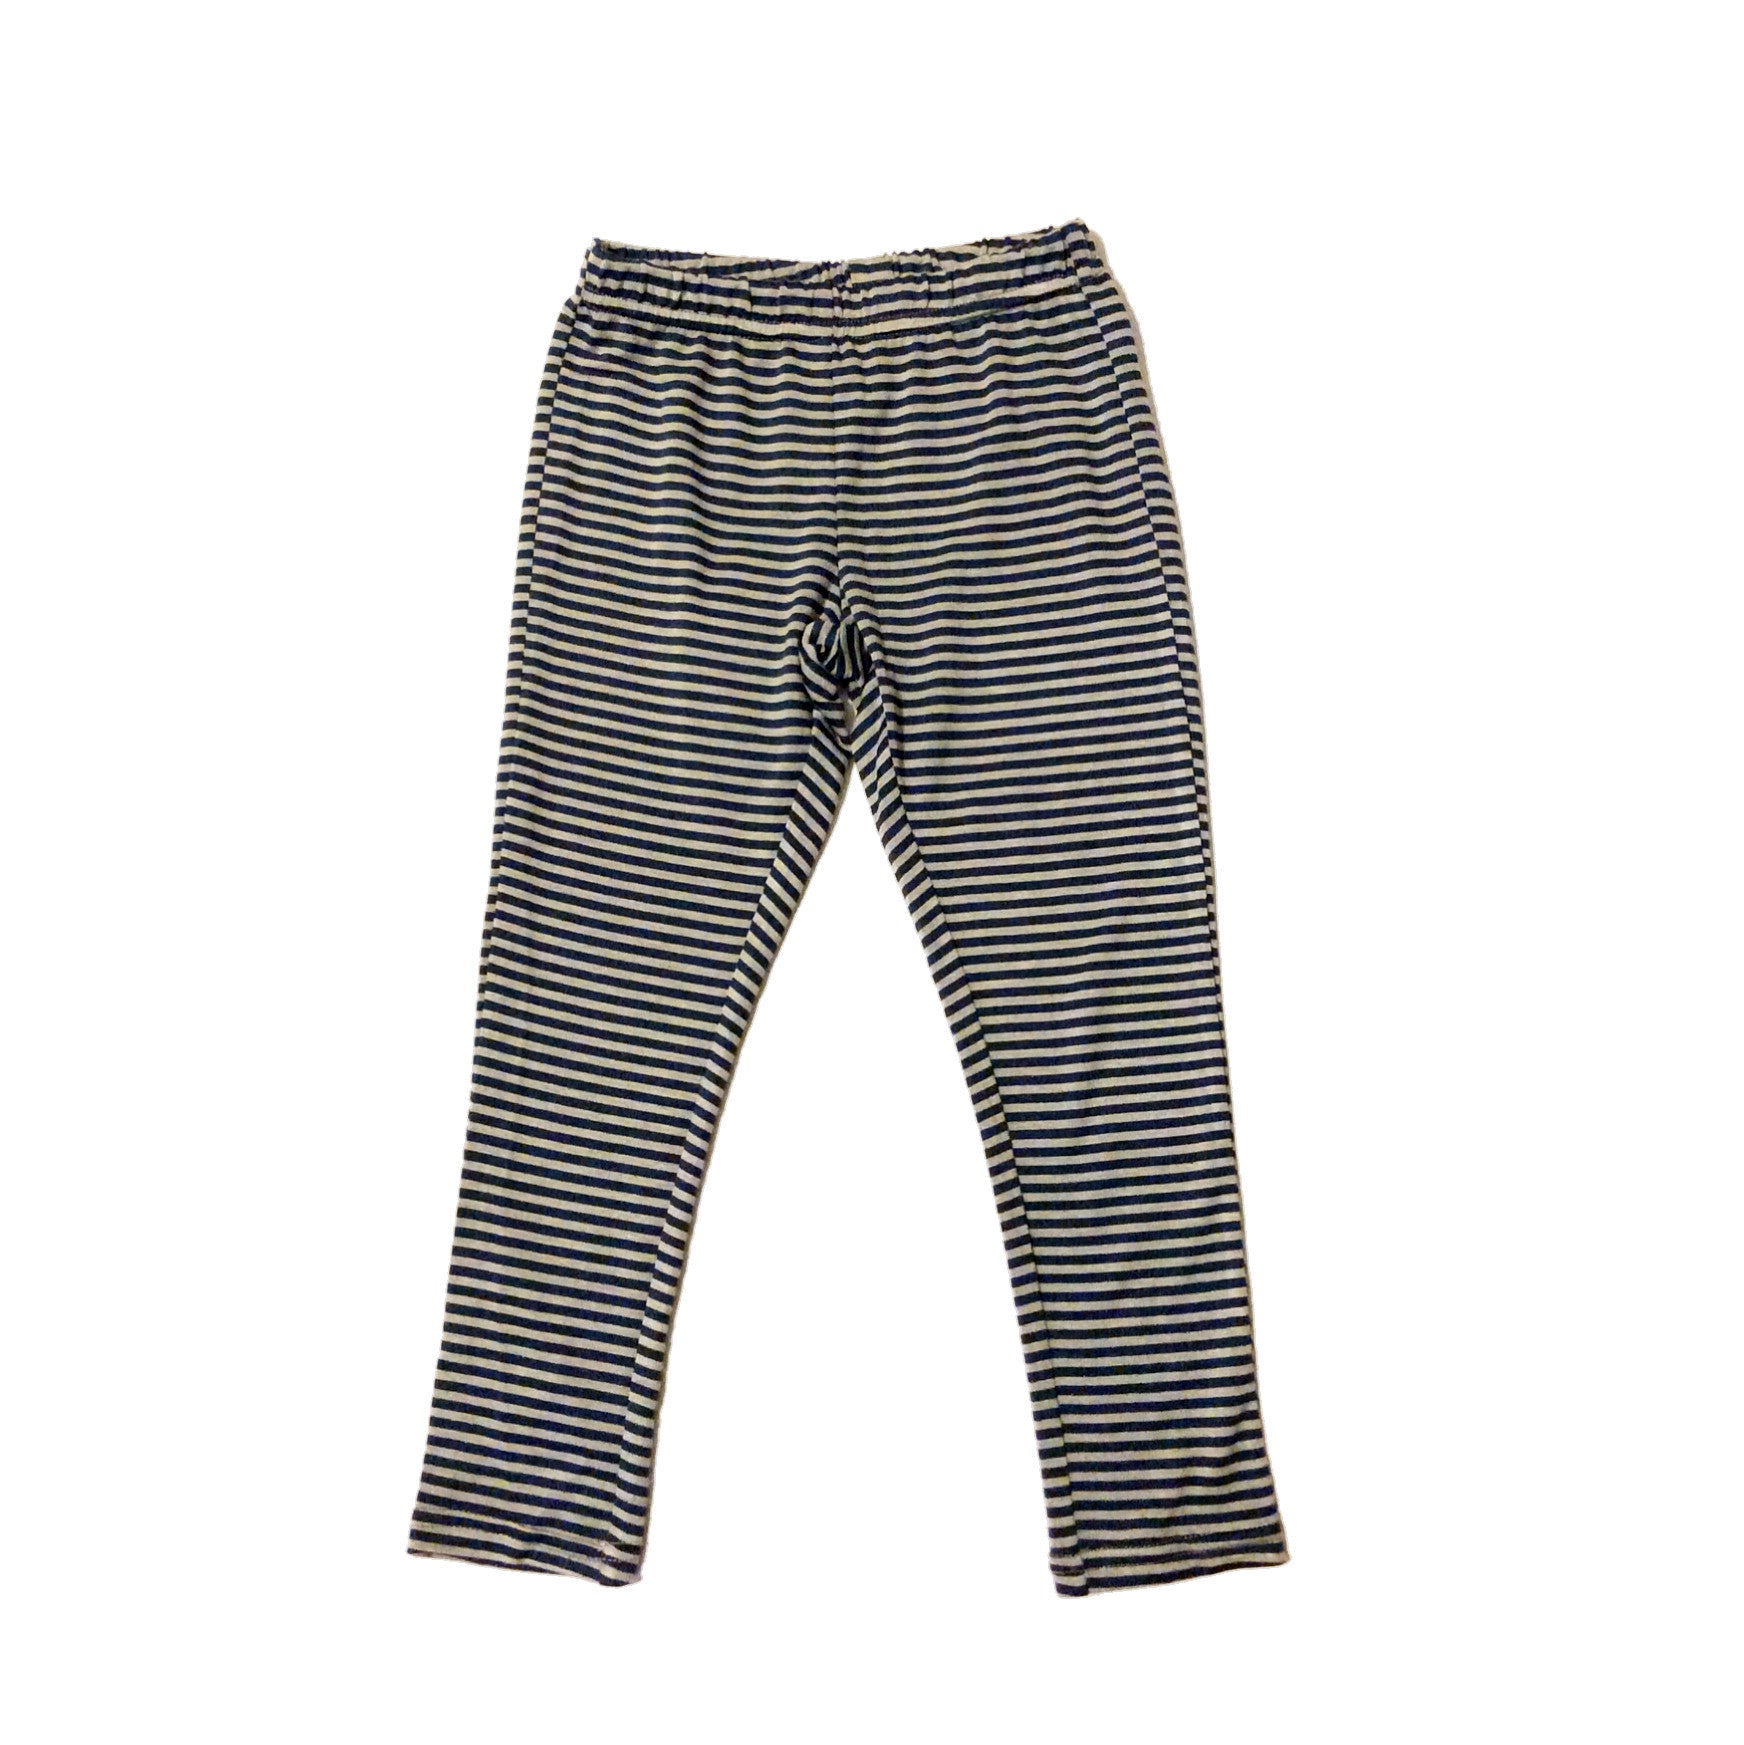 Ink Stripe Leggings - Little Citizens Boutique  - 1